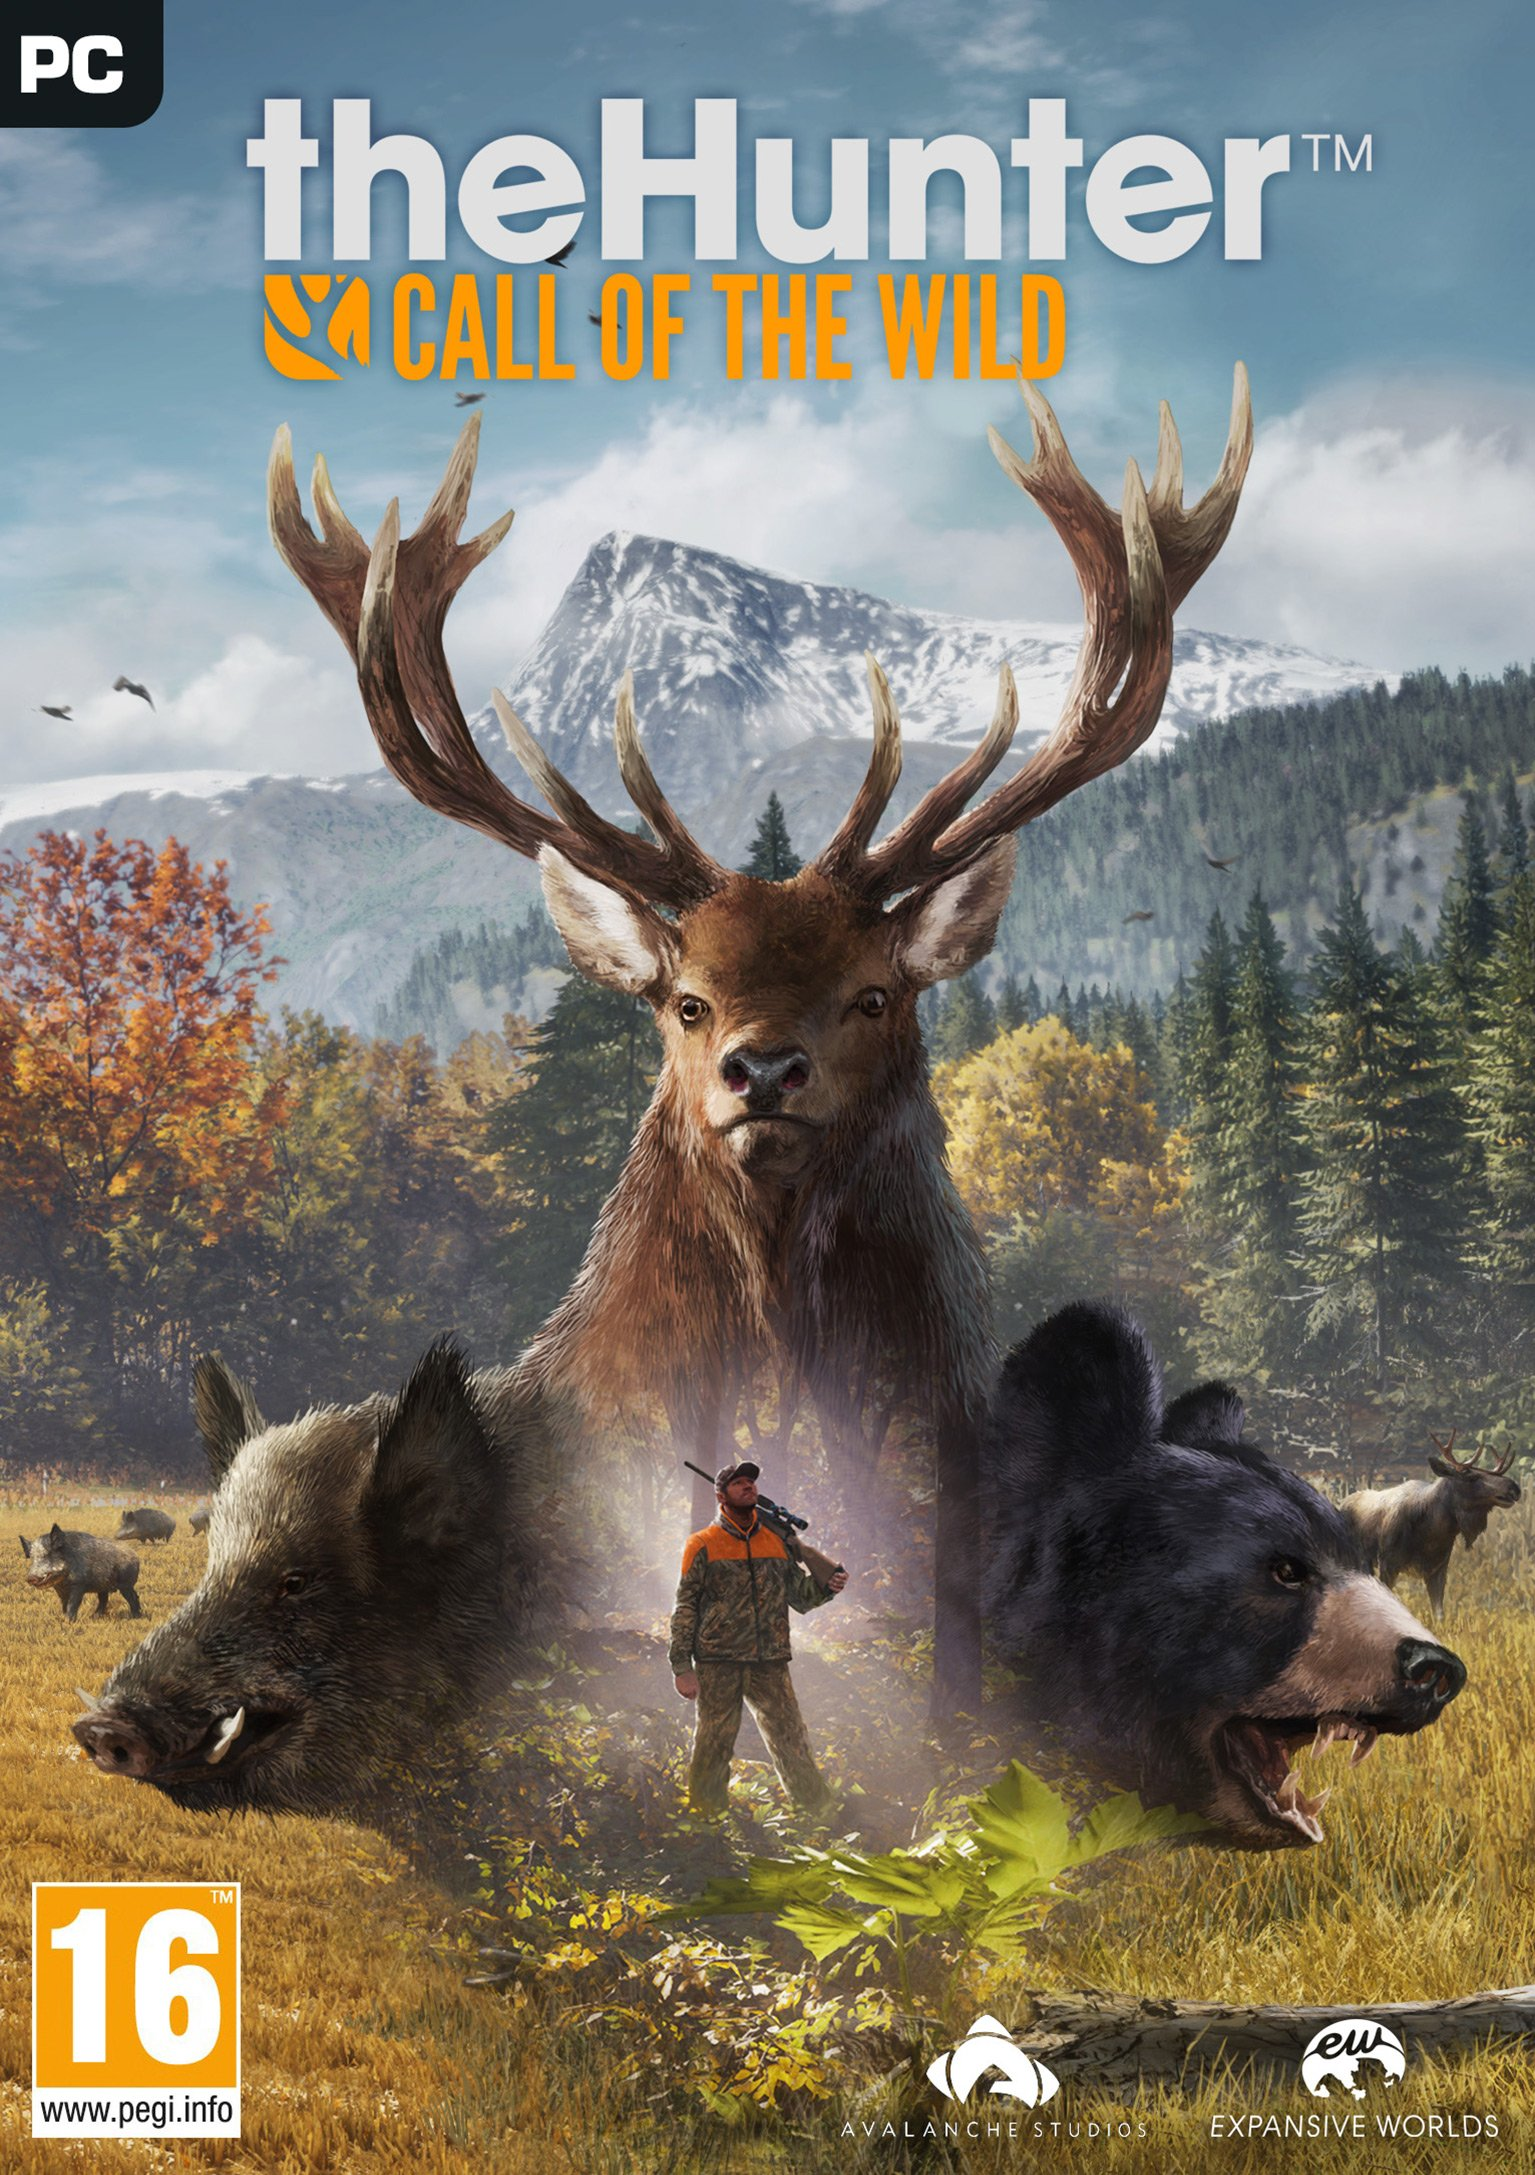 TheHunter: Call of the Wild [v 1898534+DLC] (2017)